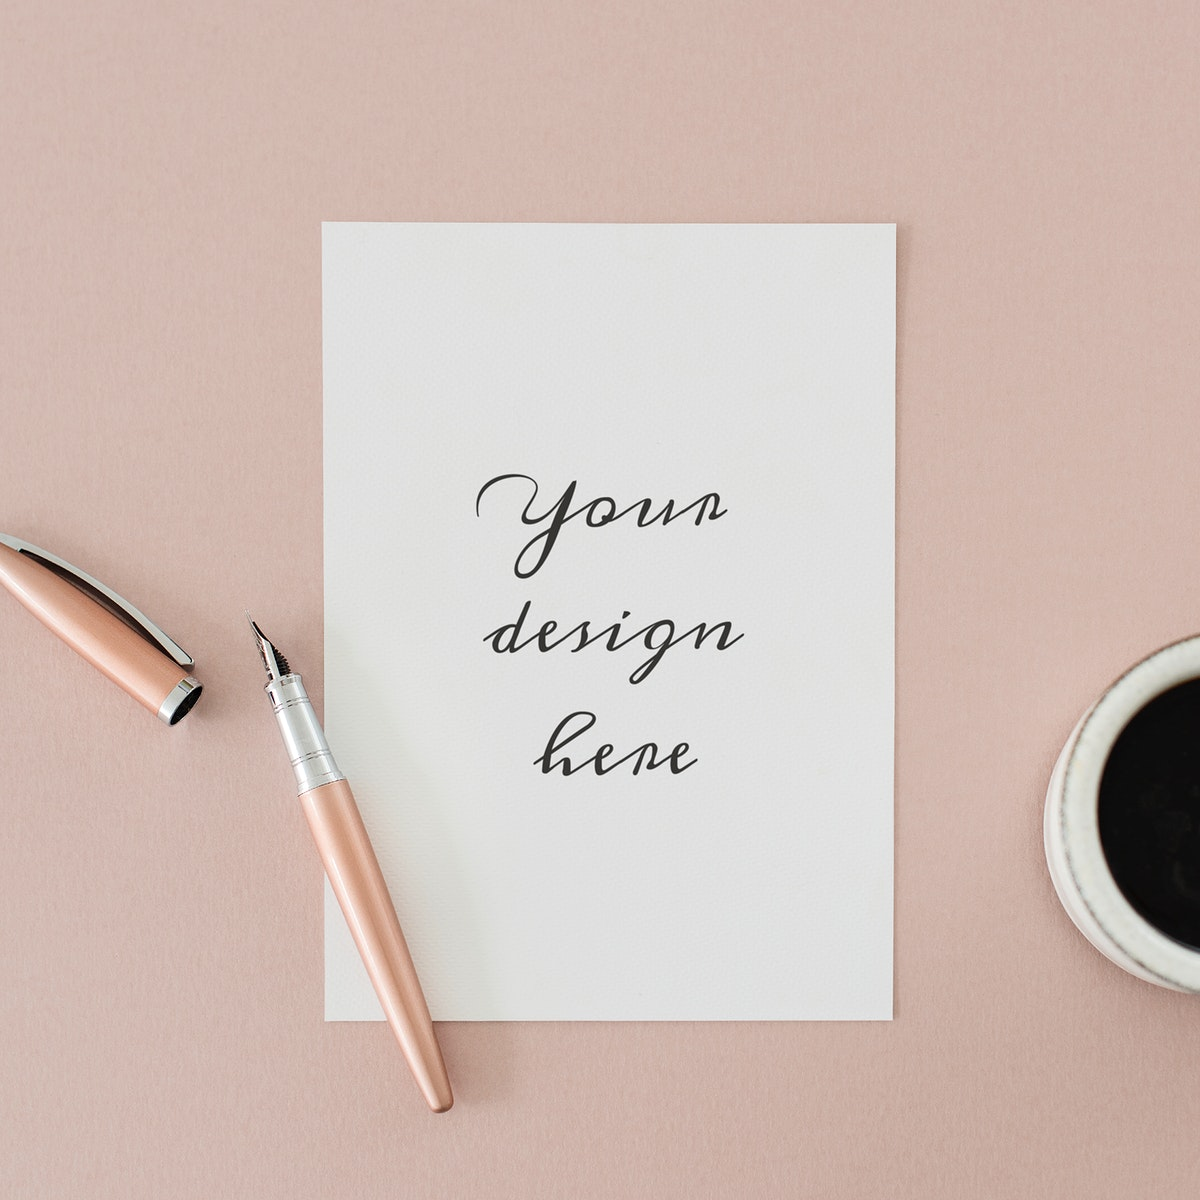 White paper mockup by a coffee cup on a pink table flatlay